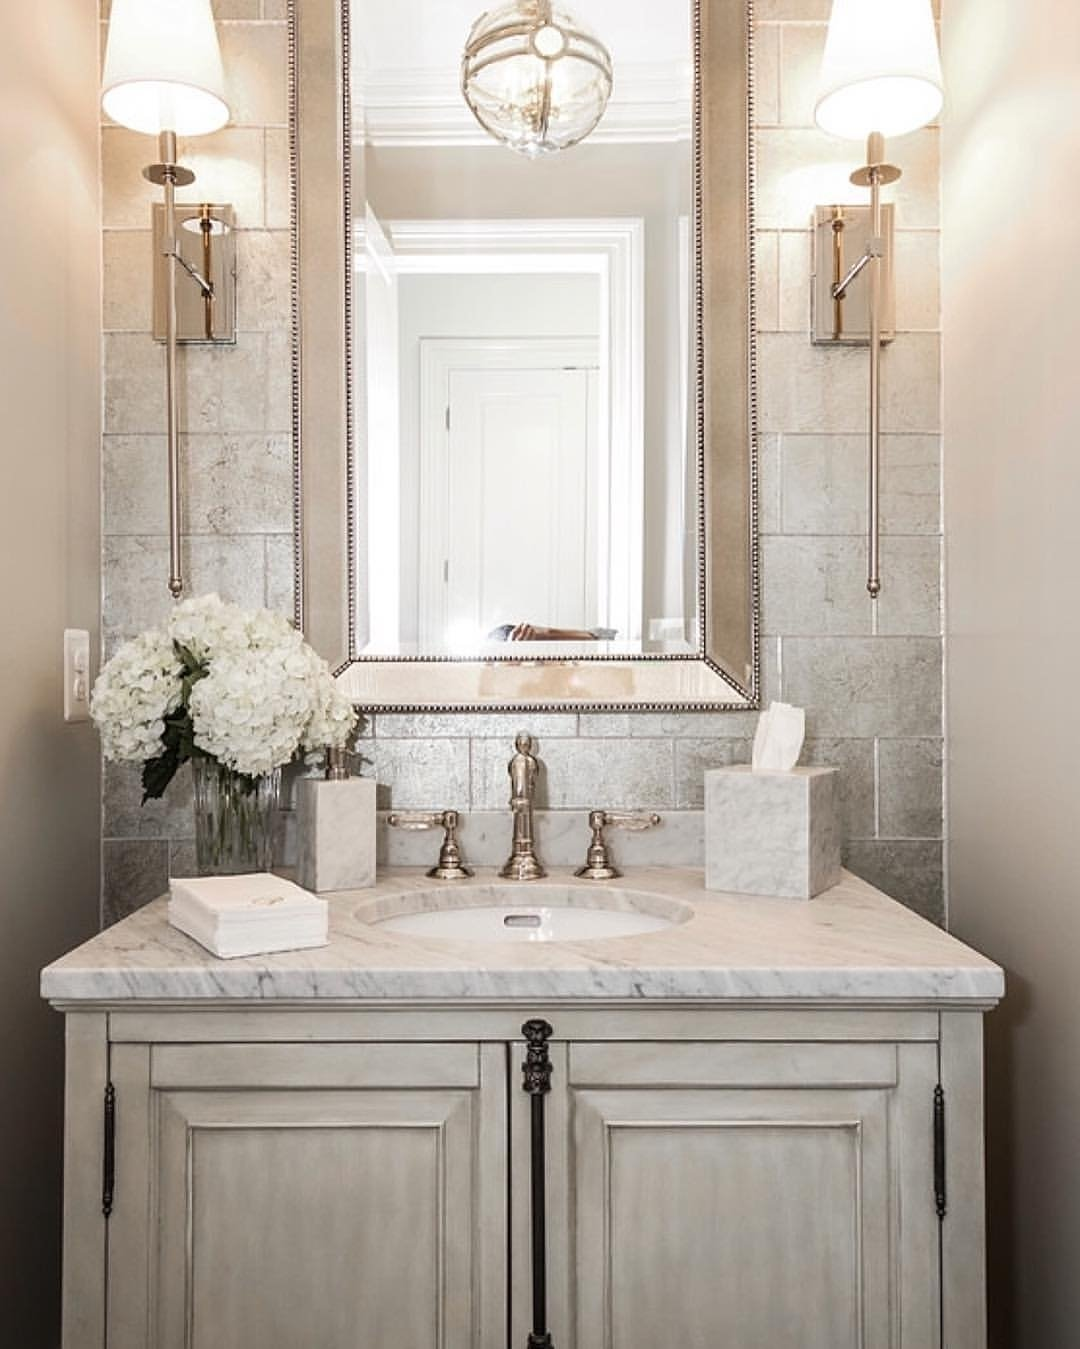 10 Cute Very Small Powder Room Ideas small powder room with white fixtures and walls ways to paint ideas